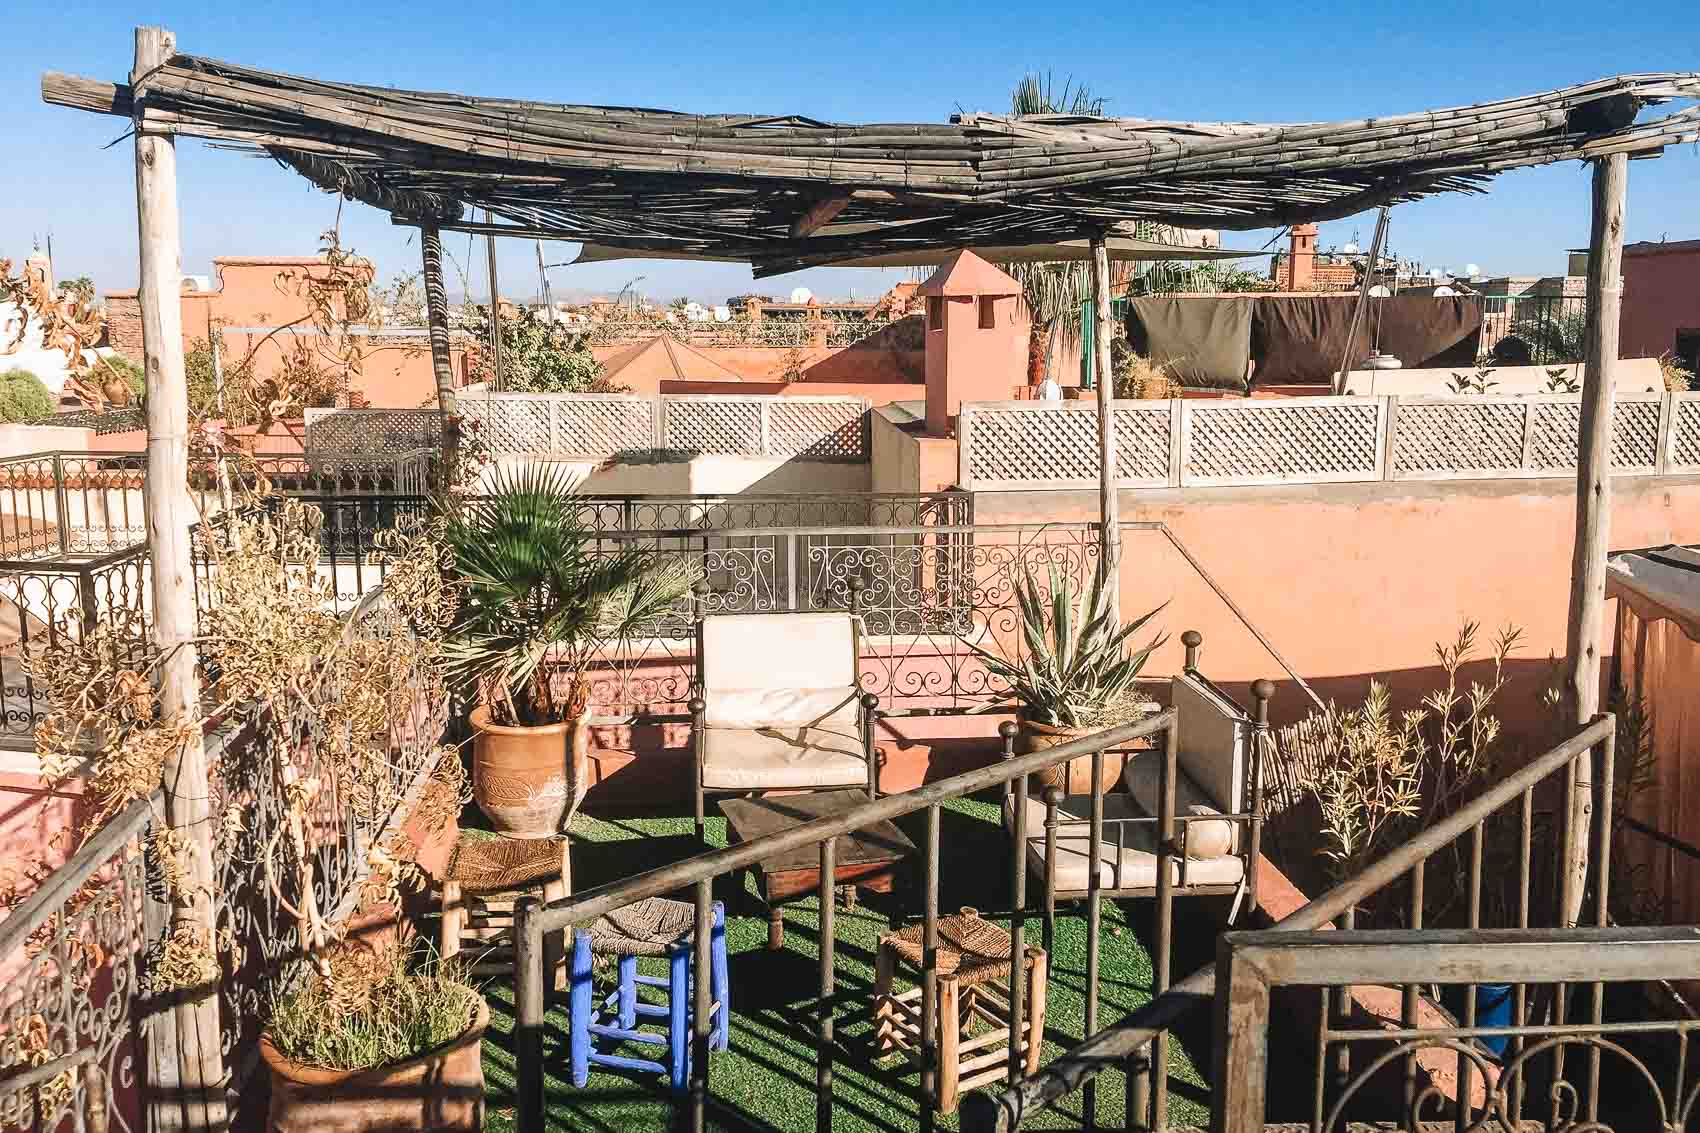 The rooftop of Riad Dar Tiflet overlooking the medina in Marrakech Morocco - bucket list travel one week itinerary